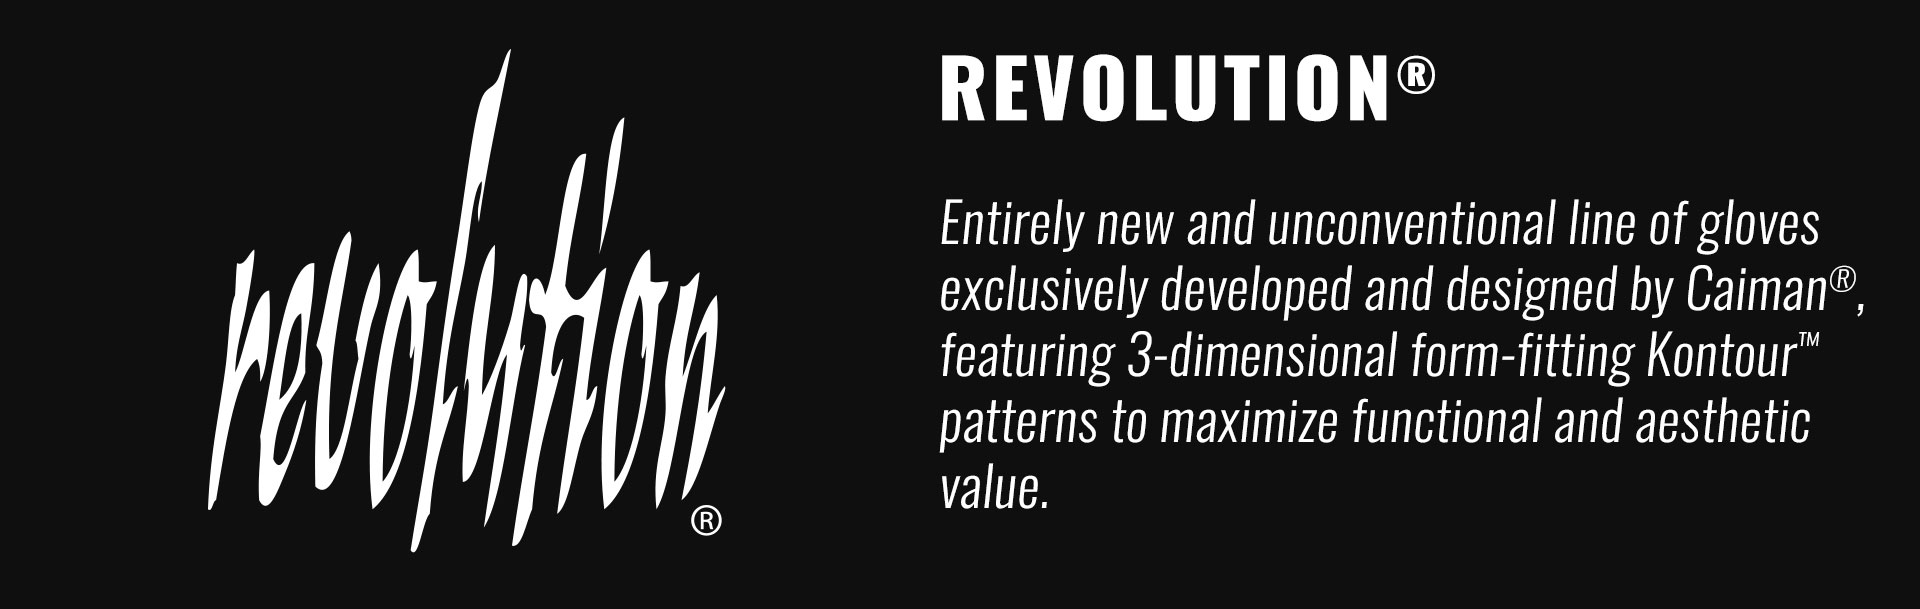 Caiman Gloves Revolution